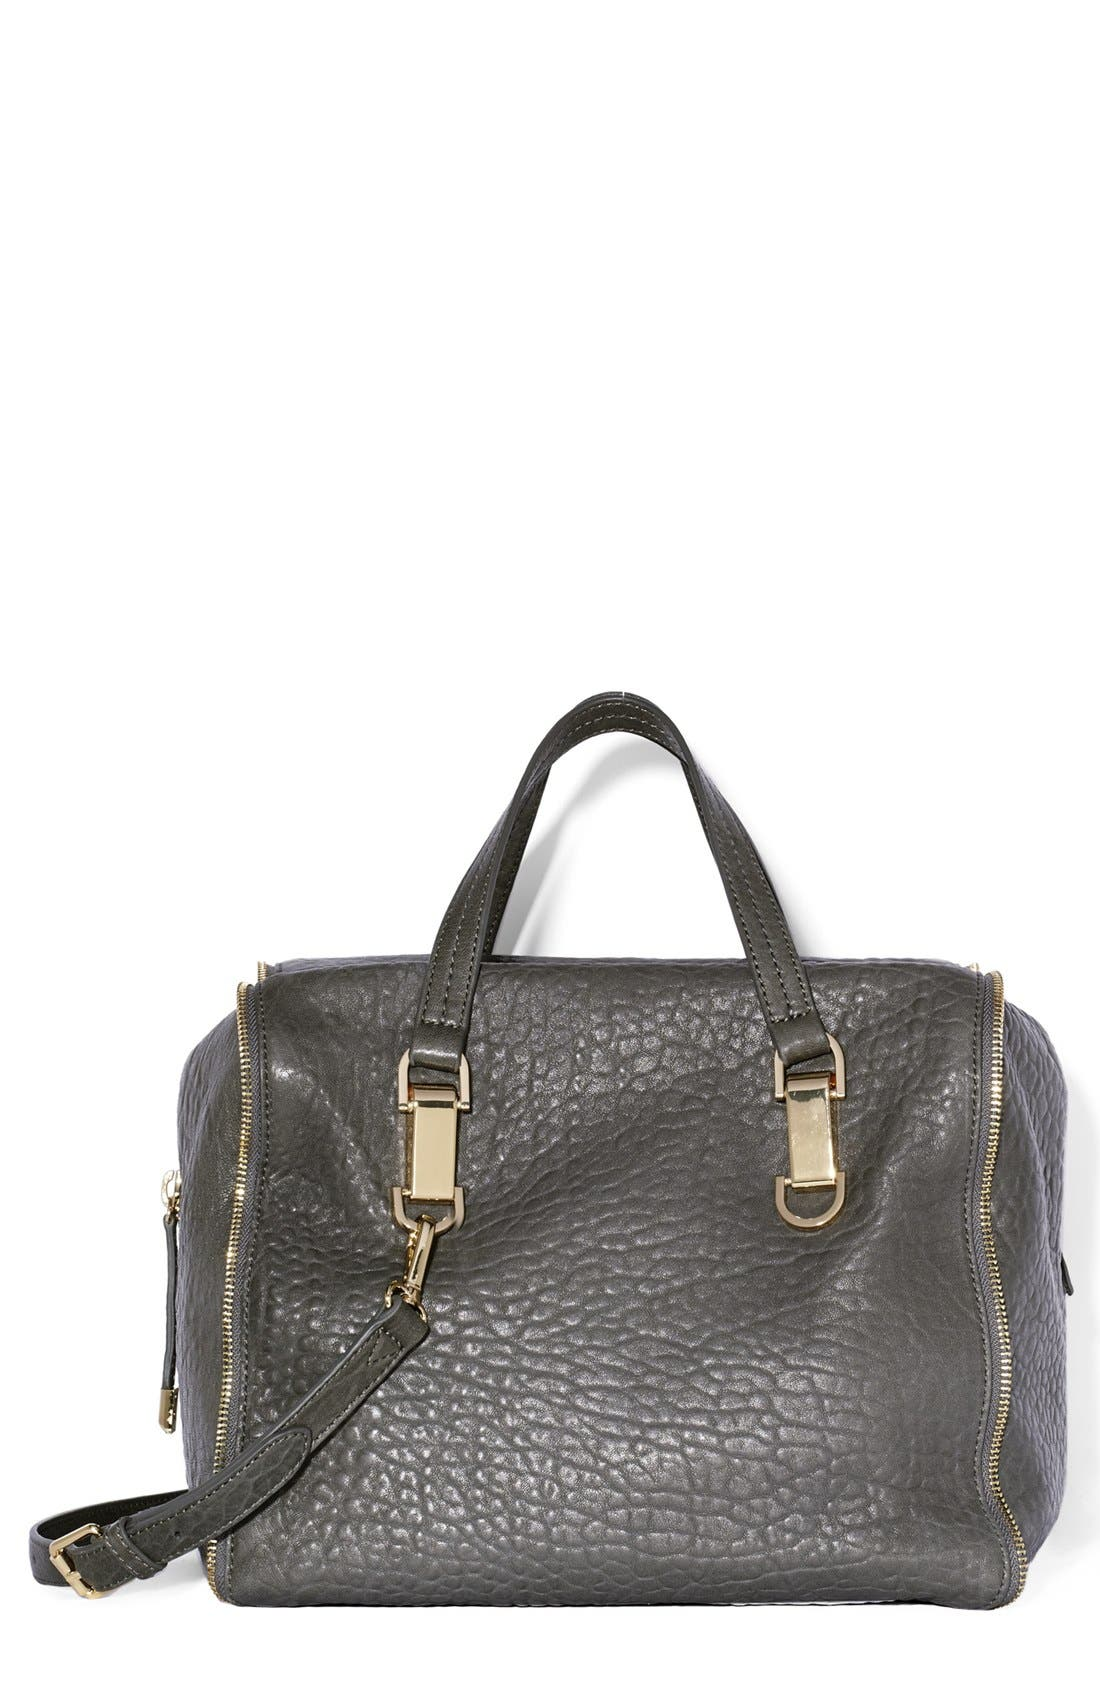 Main Image - Vince Camuto 'Riley' Leather Satchel